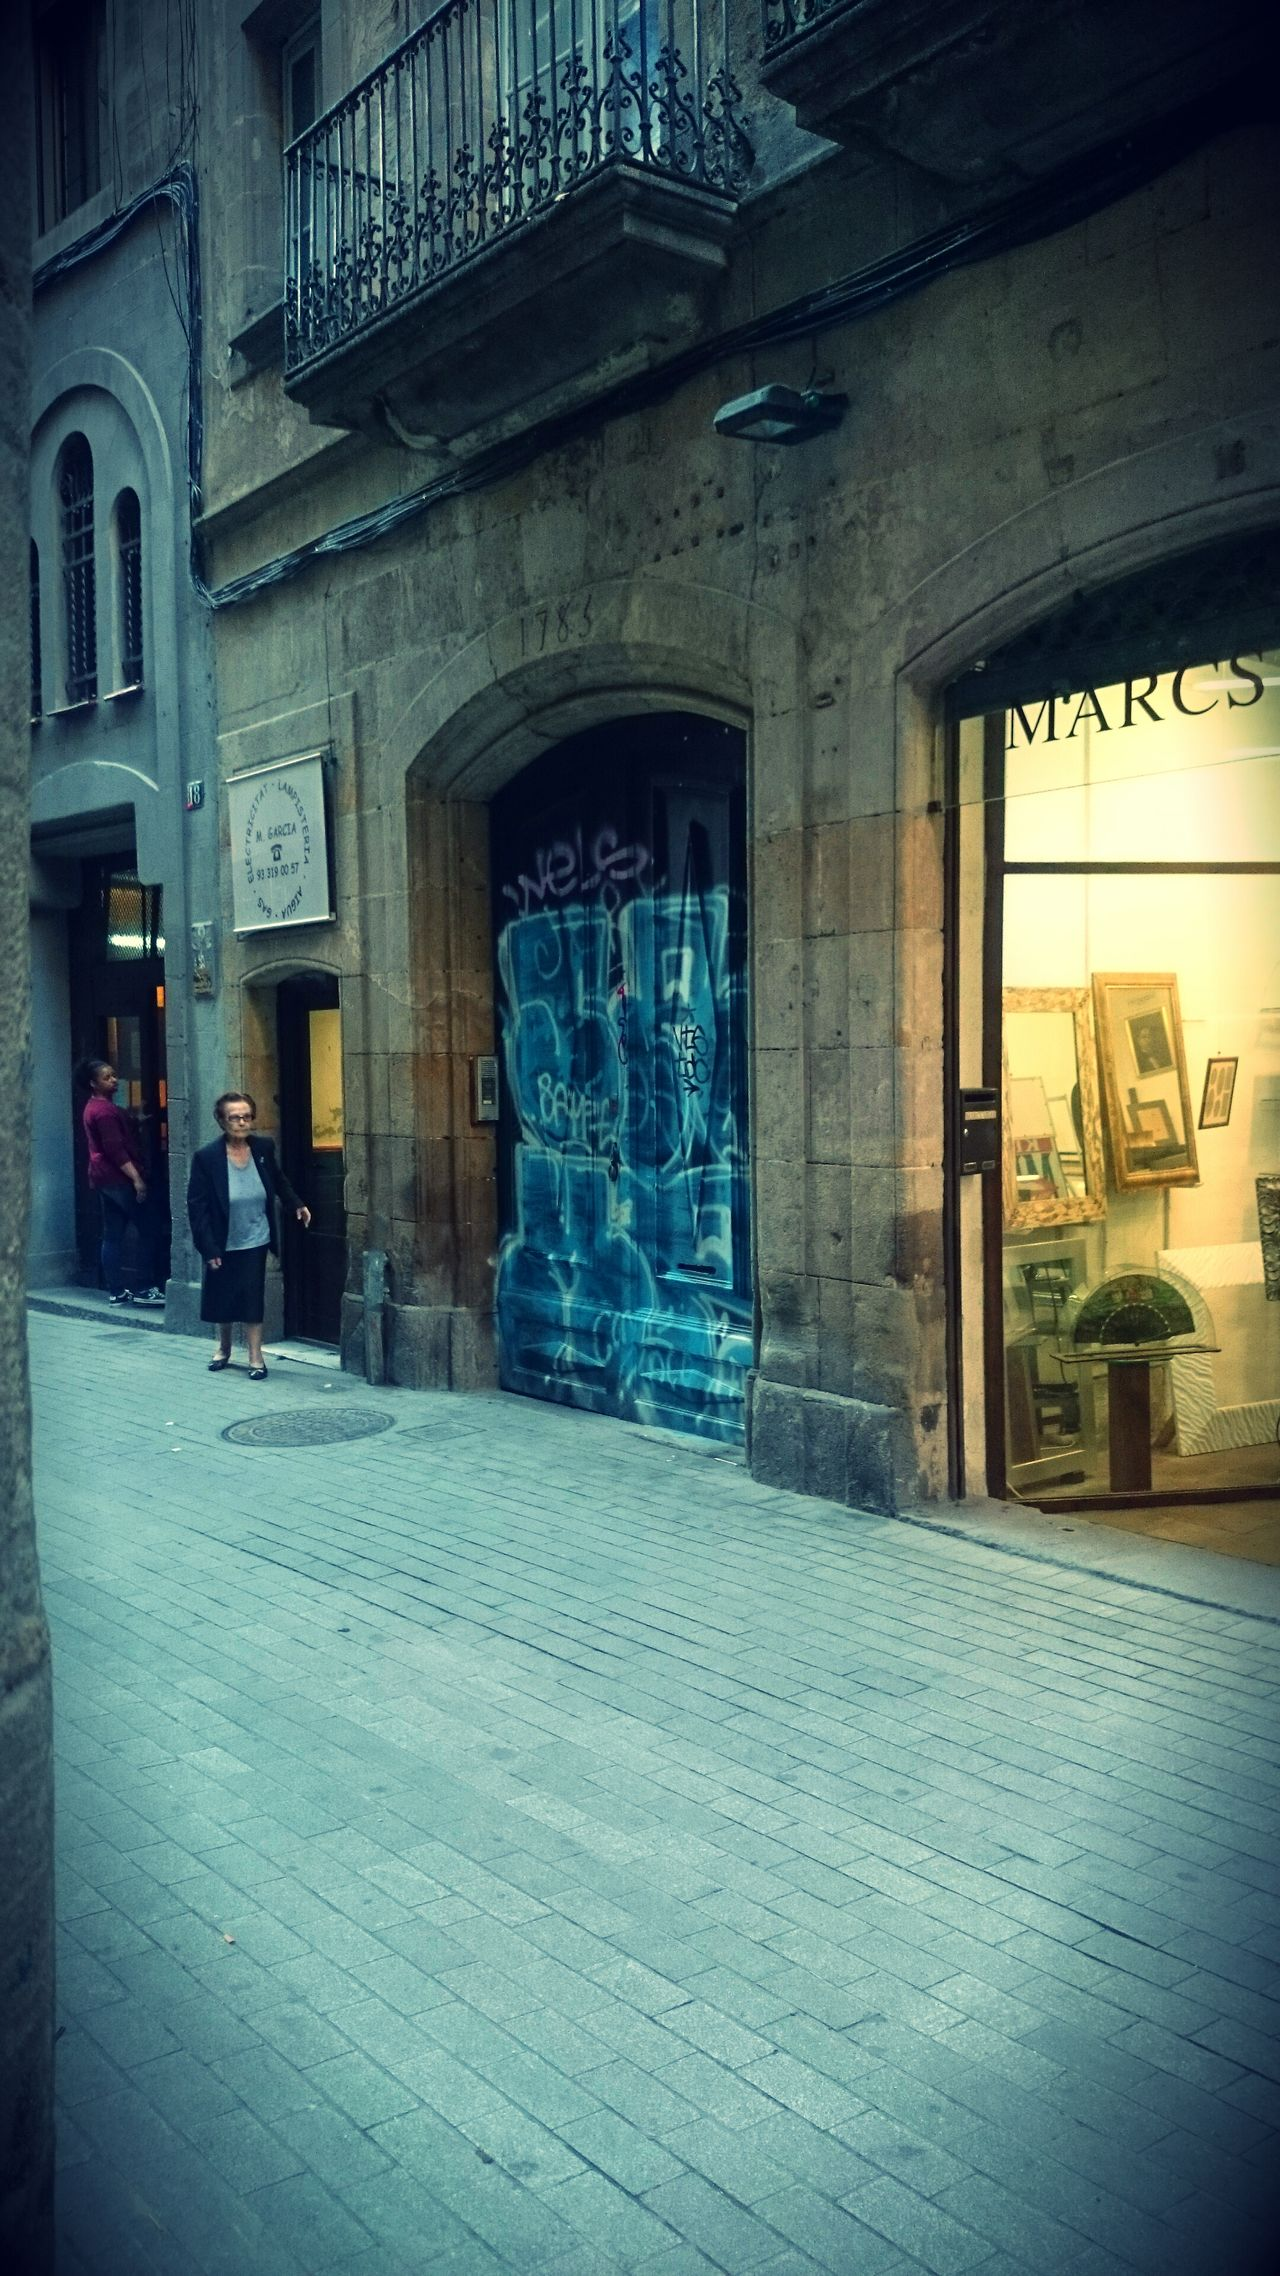 Barcelona, barri gotic, sant pere mes baix Window Built Structure Architecture Real People Day Men One Person Indoors  People Tourism House Architecture Building Exterior City Door History Barcelona Neighborhood